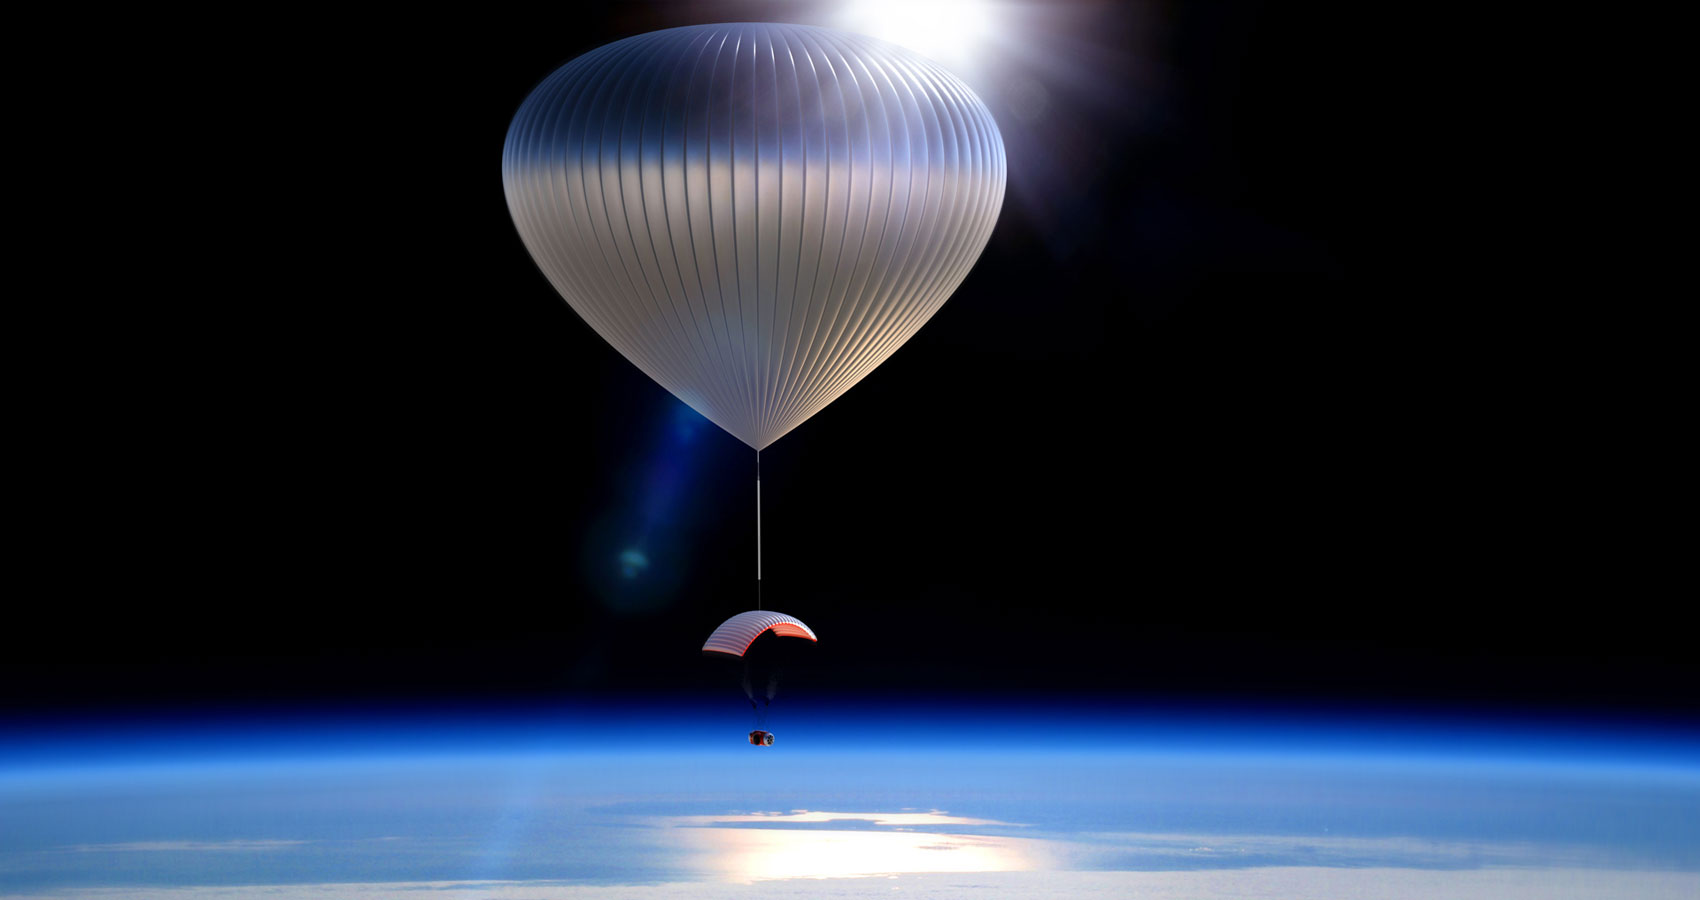 Balloons could fly you to the edge of space at Spillwords.com